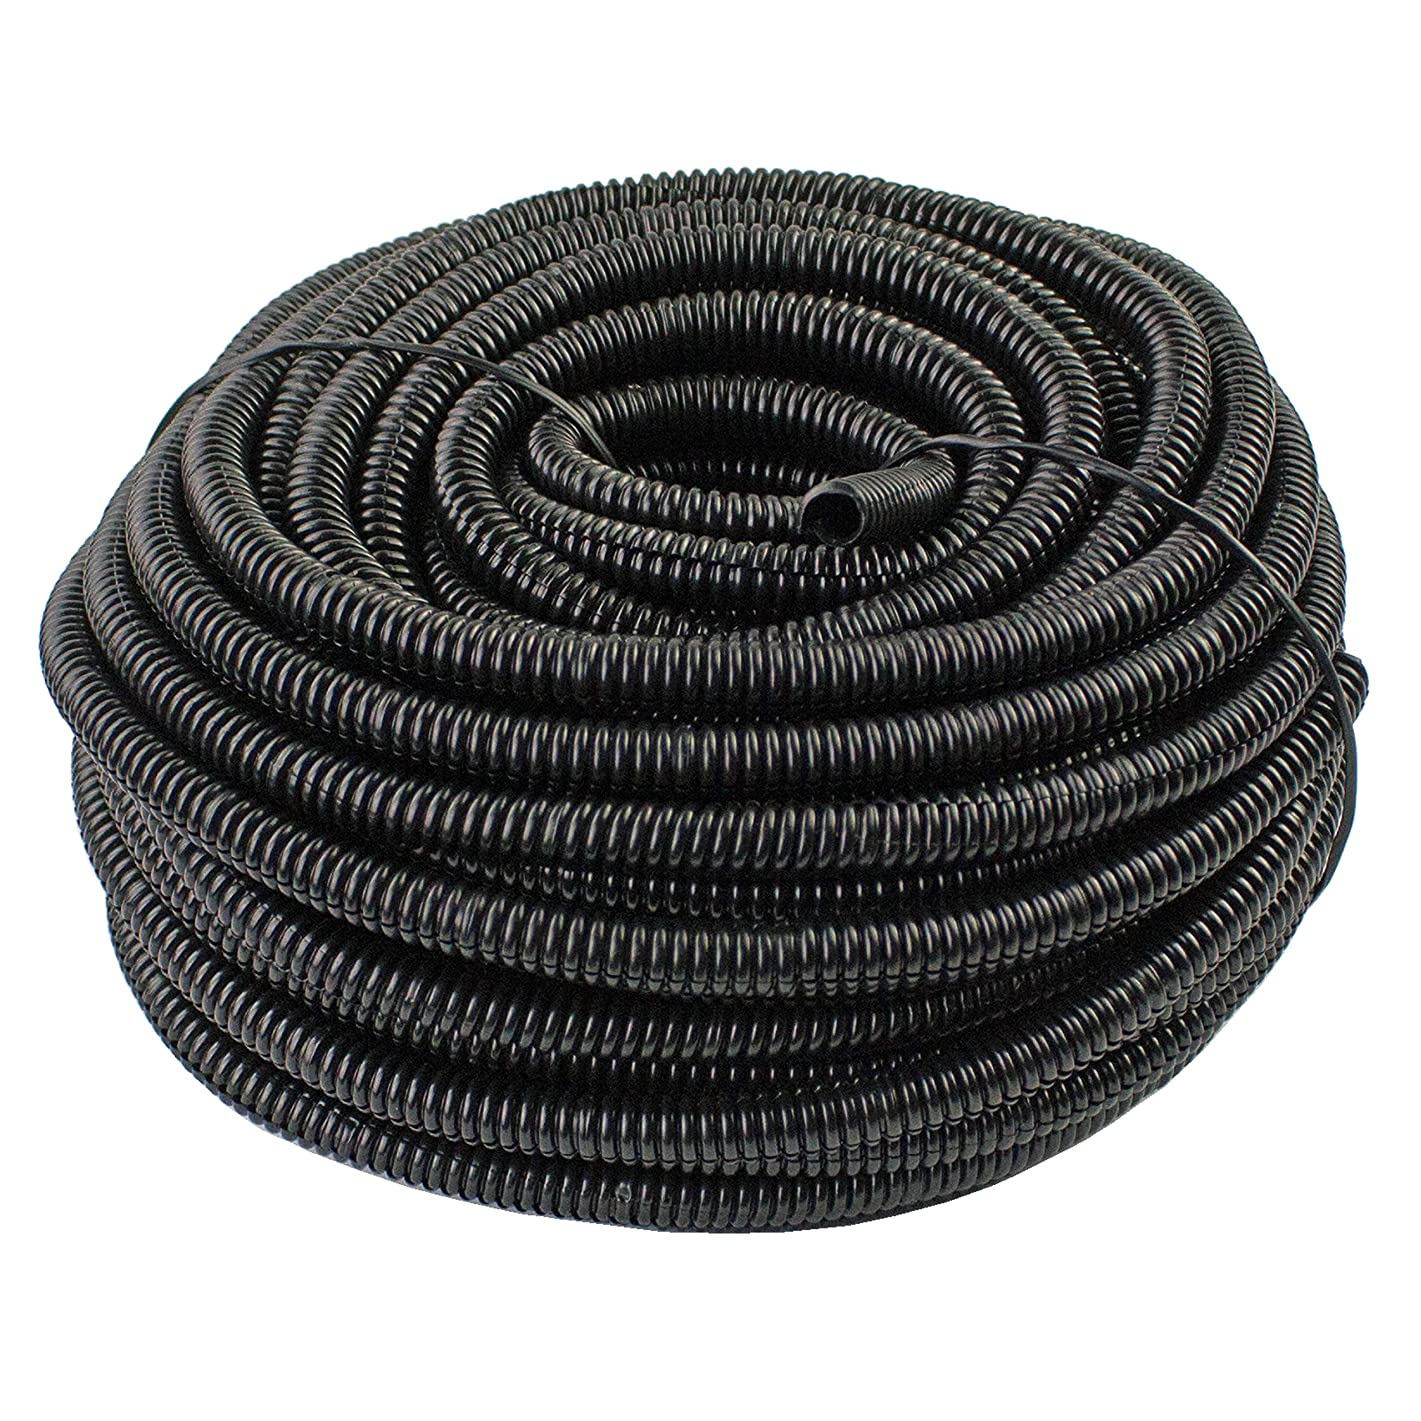 5 FT - 100 FT | Split Loom TUBING - Polyethylene/High Temperature/Electrical Conduit (Size: 1/8